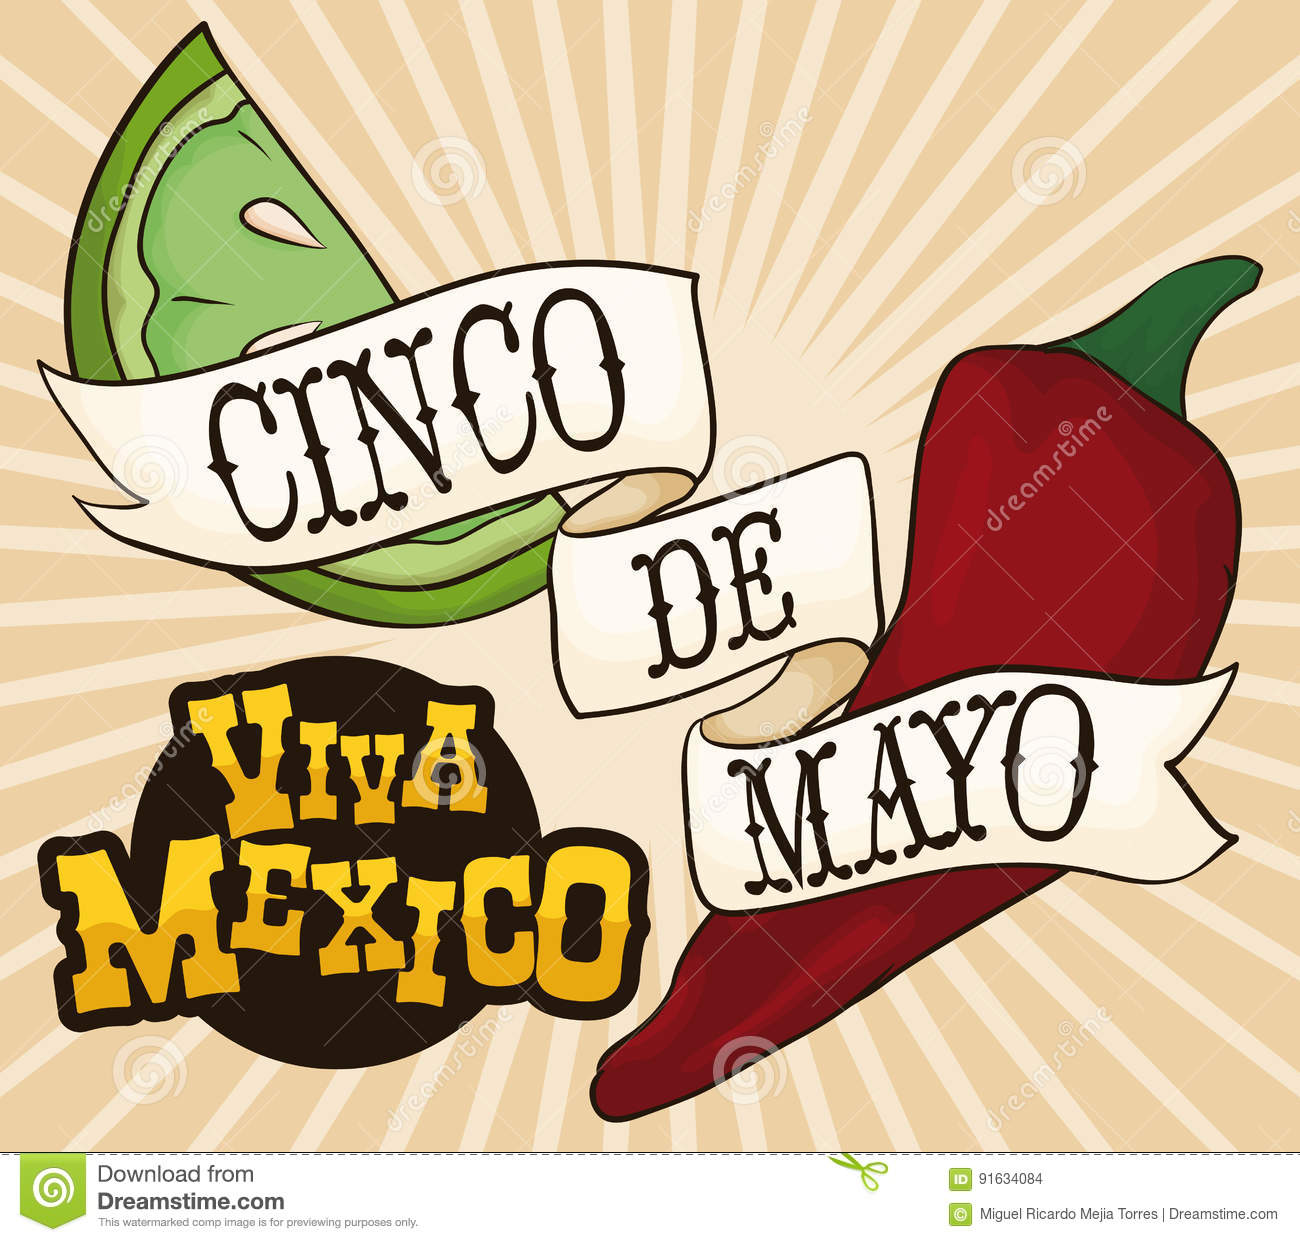 an examination of the fifth of may or cinco de mayo a mexican holiday Cinco de mayo is a cultural phenomenon in the united states it's a time to  celebrate mexican culture and, for some, an opportunity to drink a lot of  margaritas and cerveza but it is also a frequently misunderstood holiday   when the french finally attacked, on may 5, 1862, the battle lasted from daybreak  to.